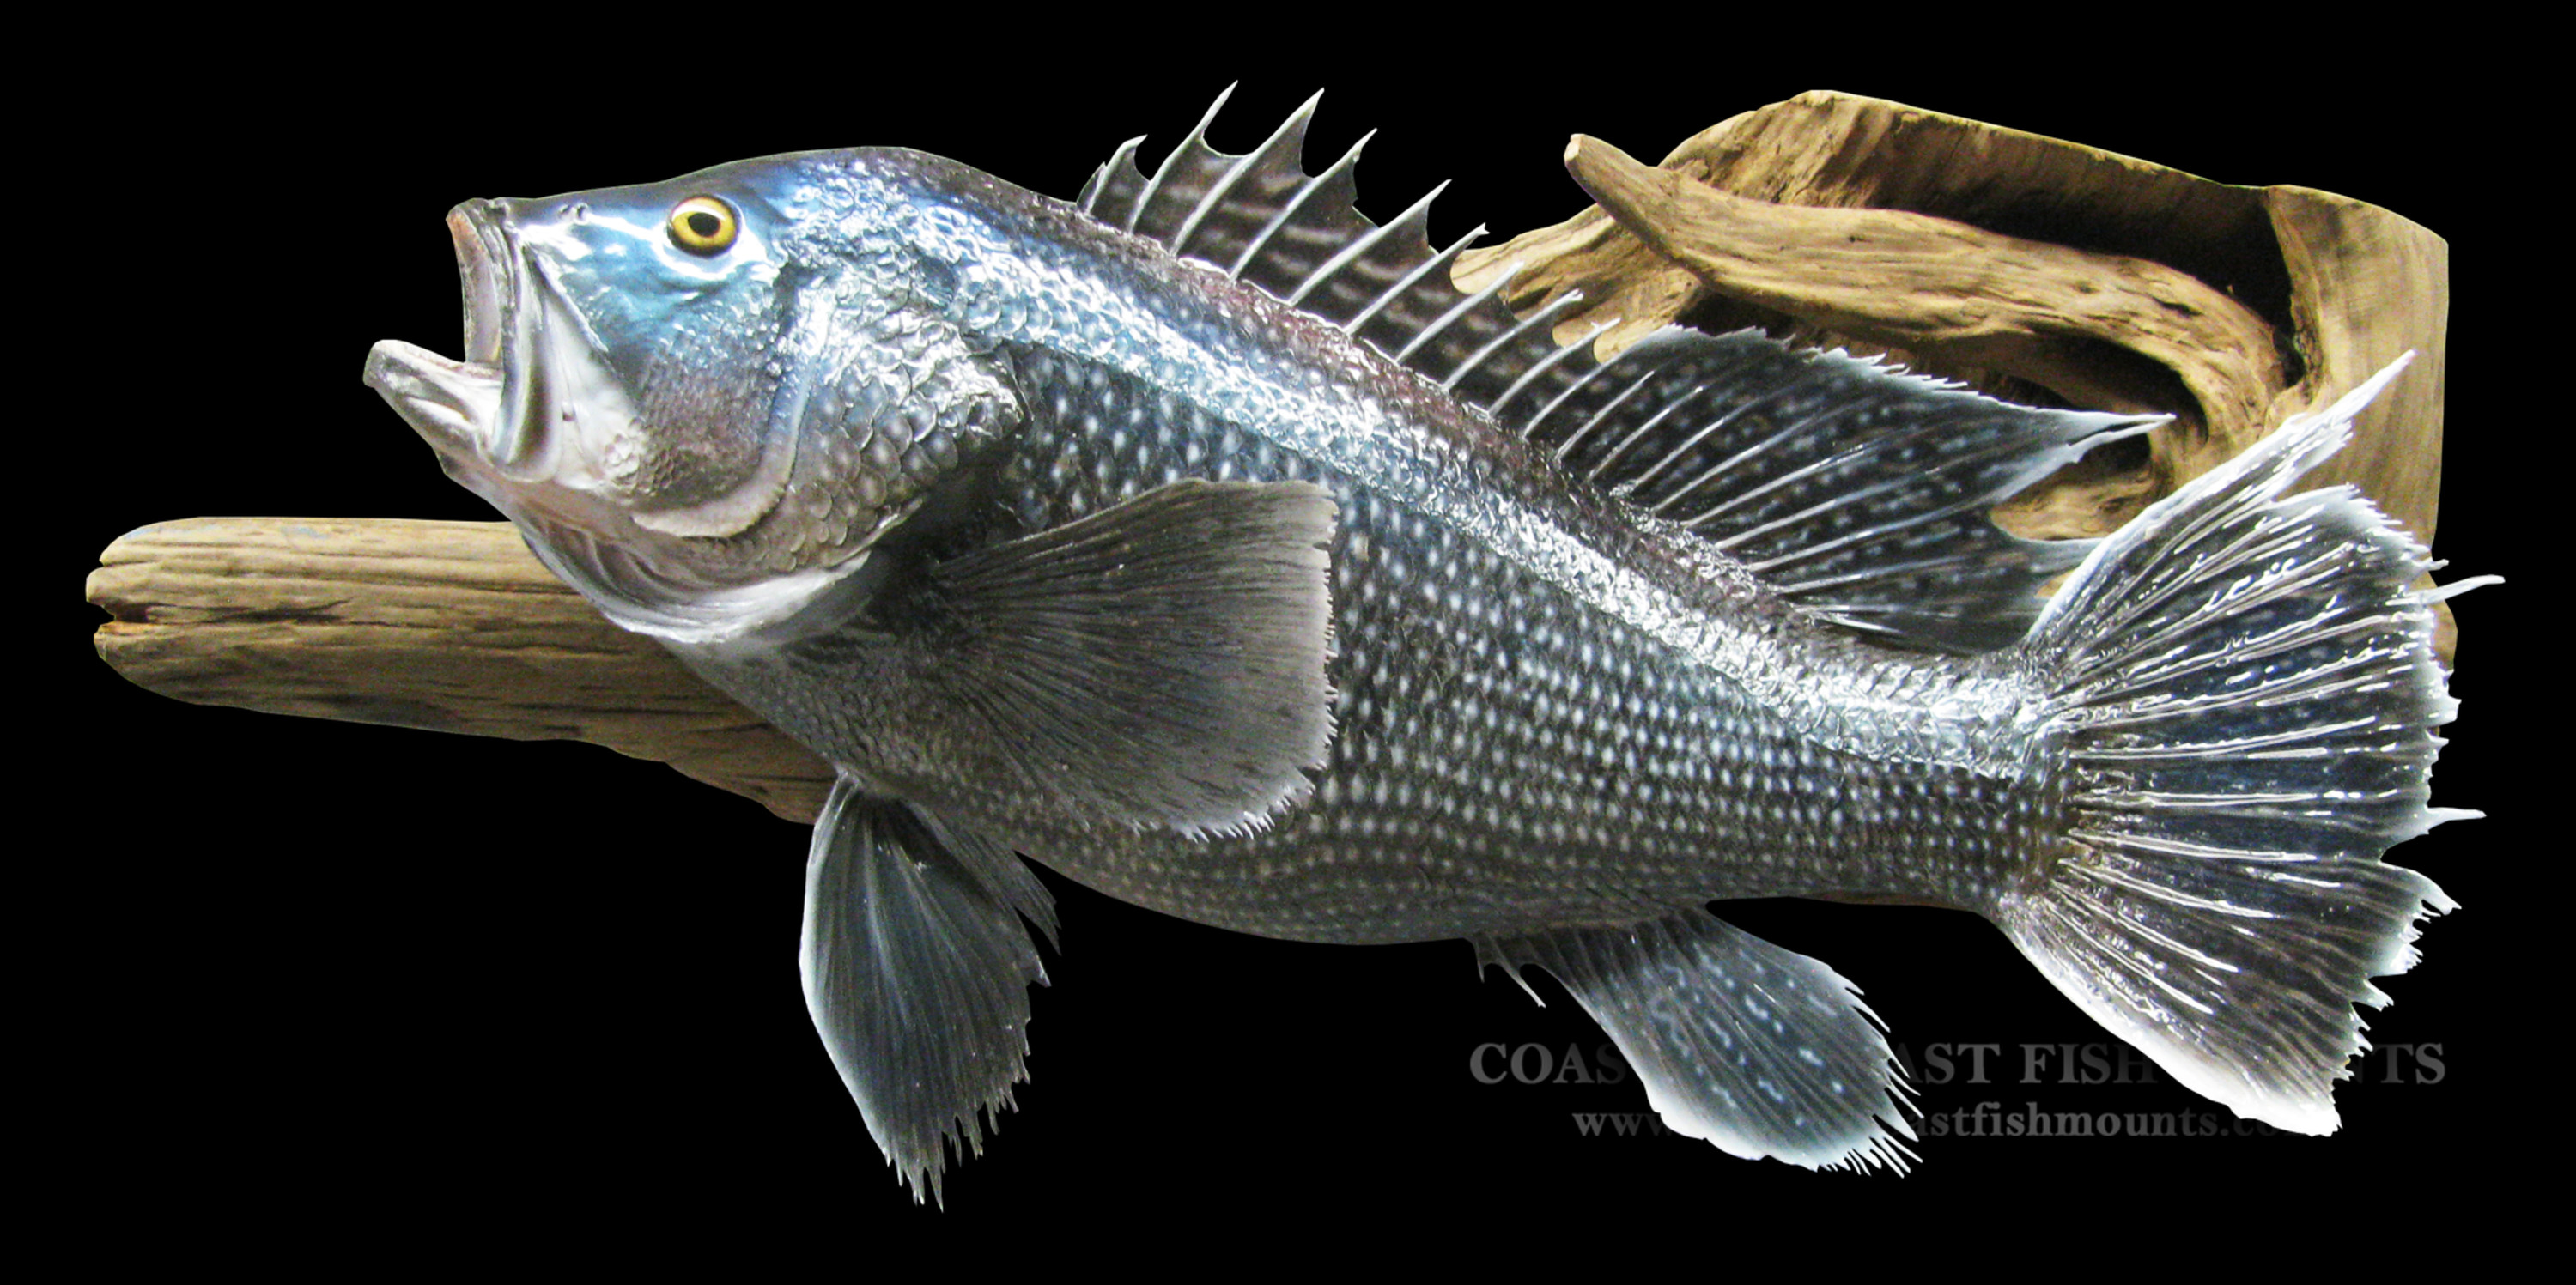 Sea bass fish mount and fish replicas coast to coast for Pictures of bass fish